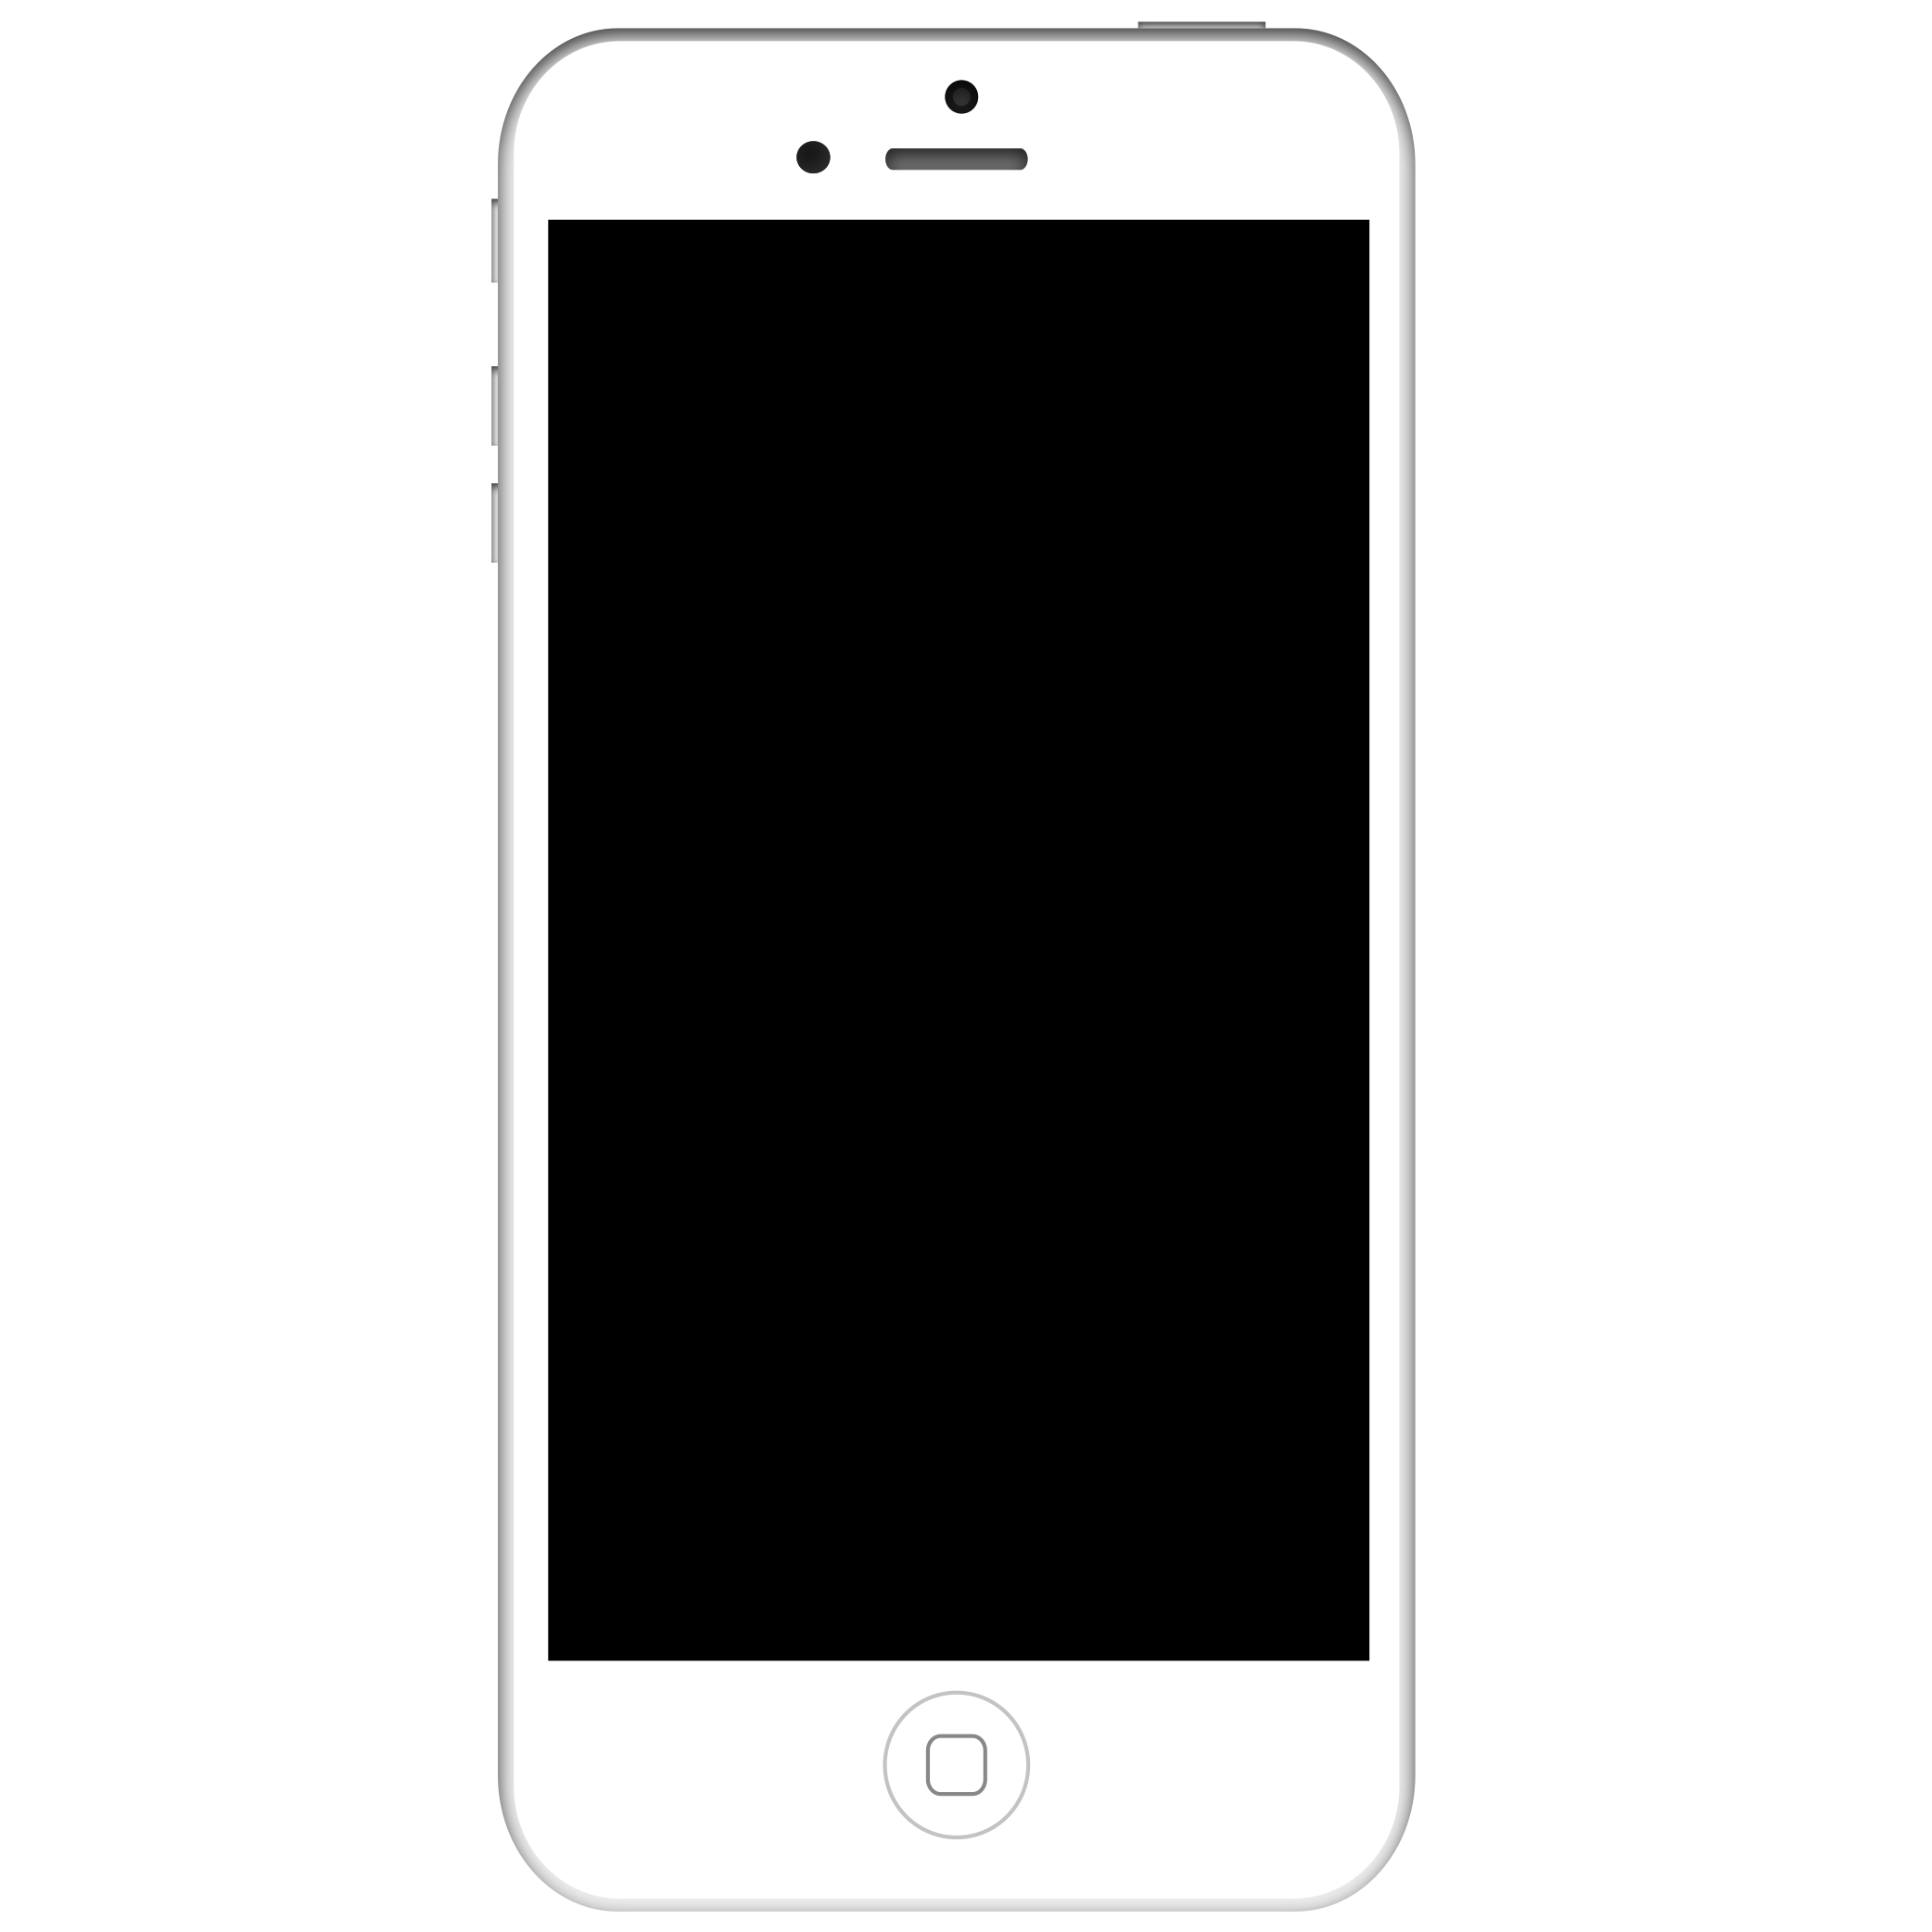 Black Iphone 5 Png